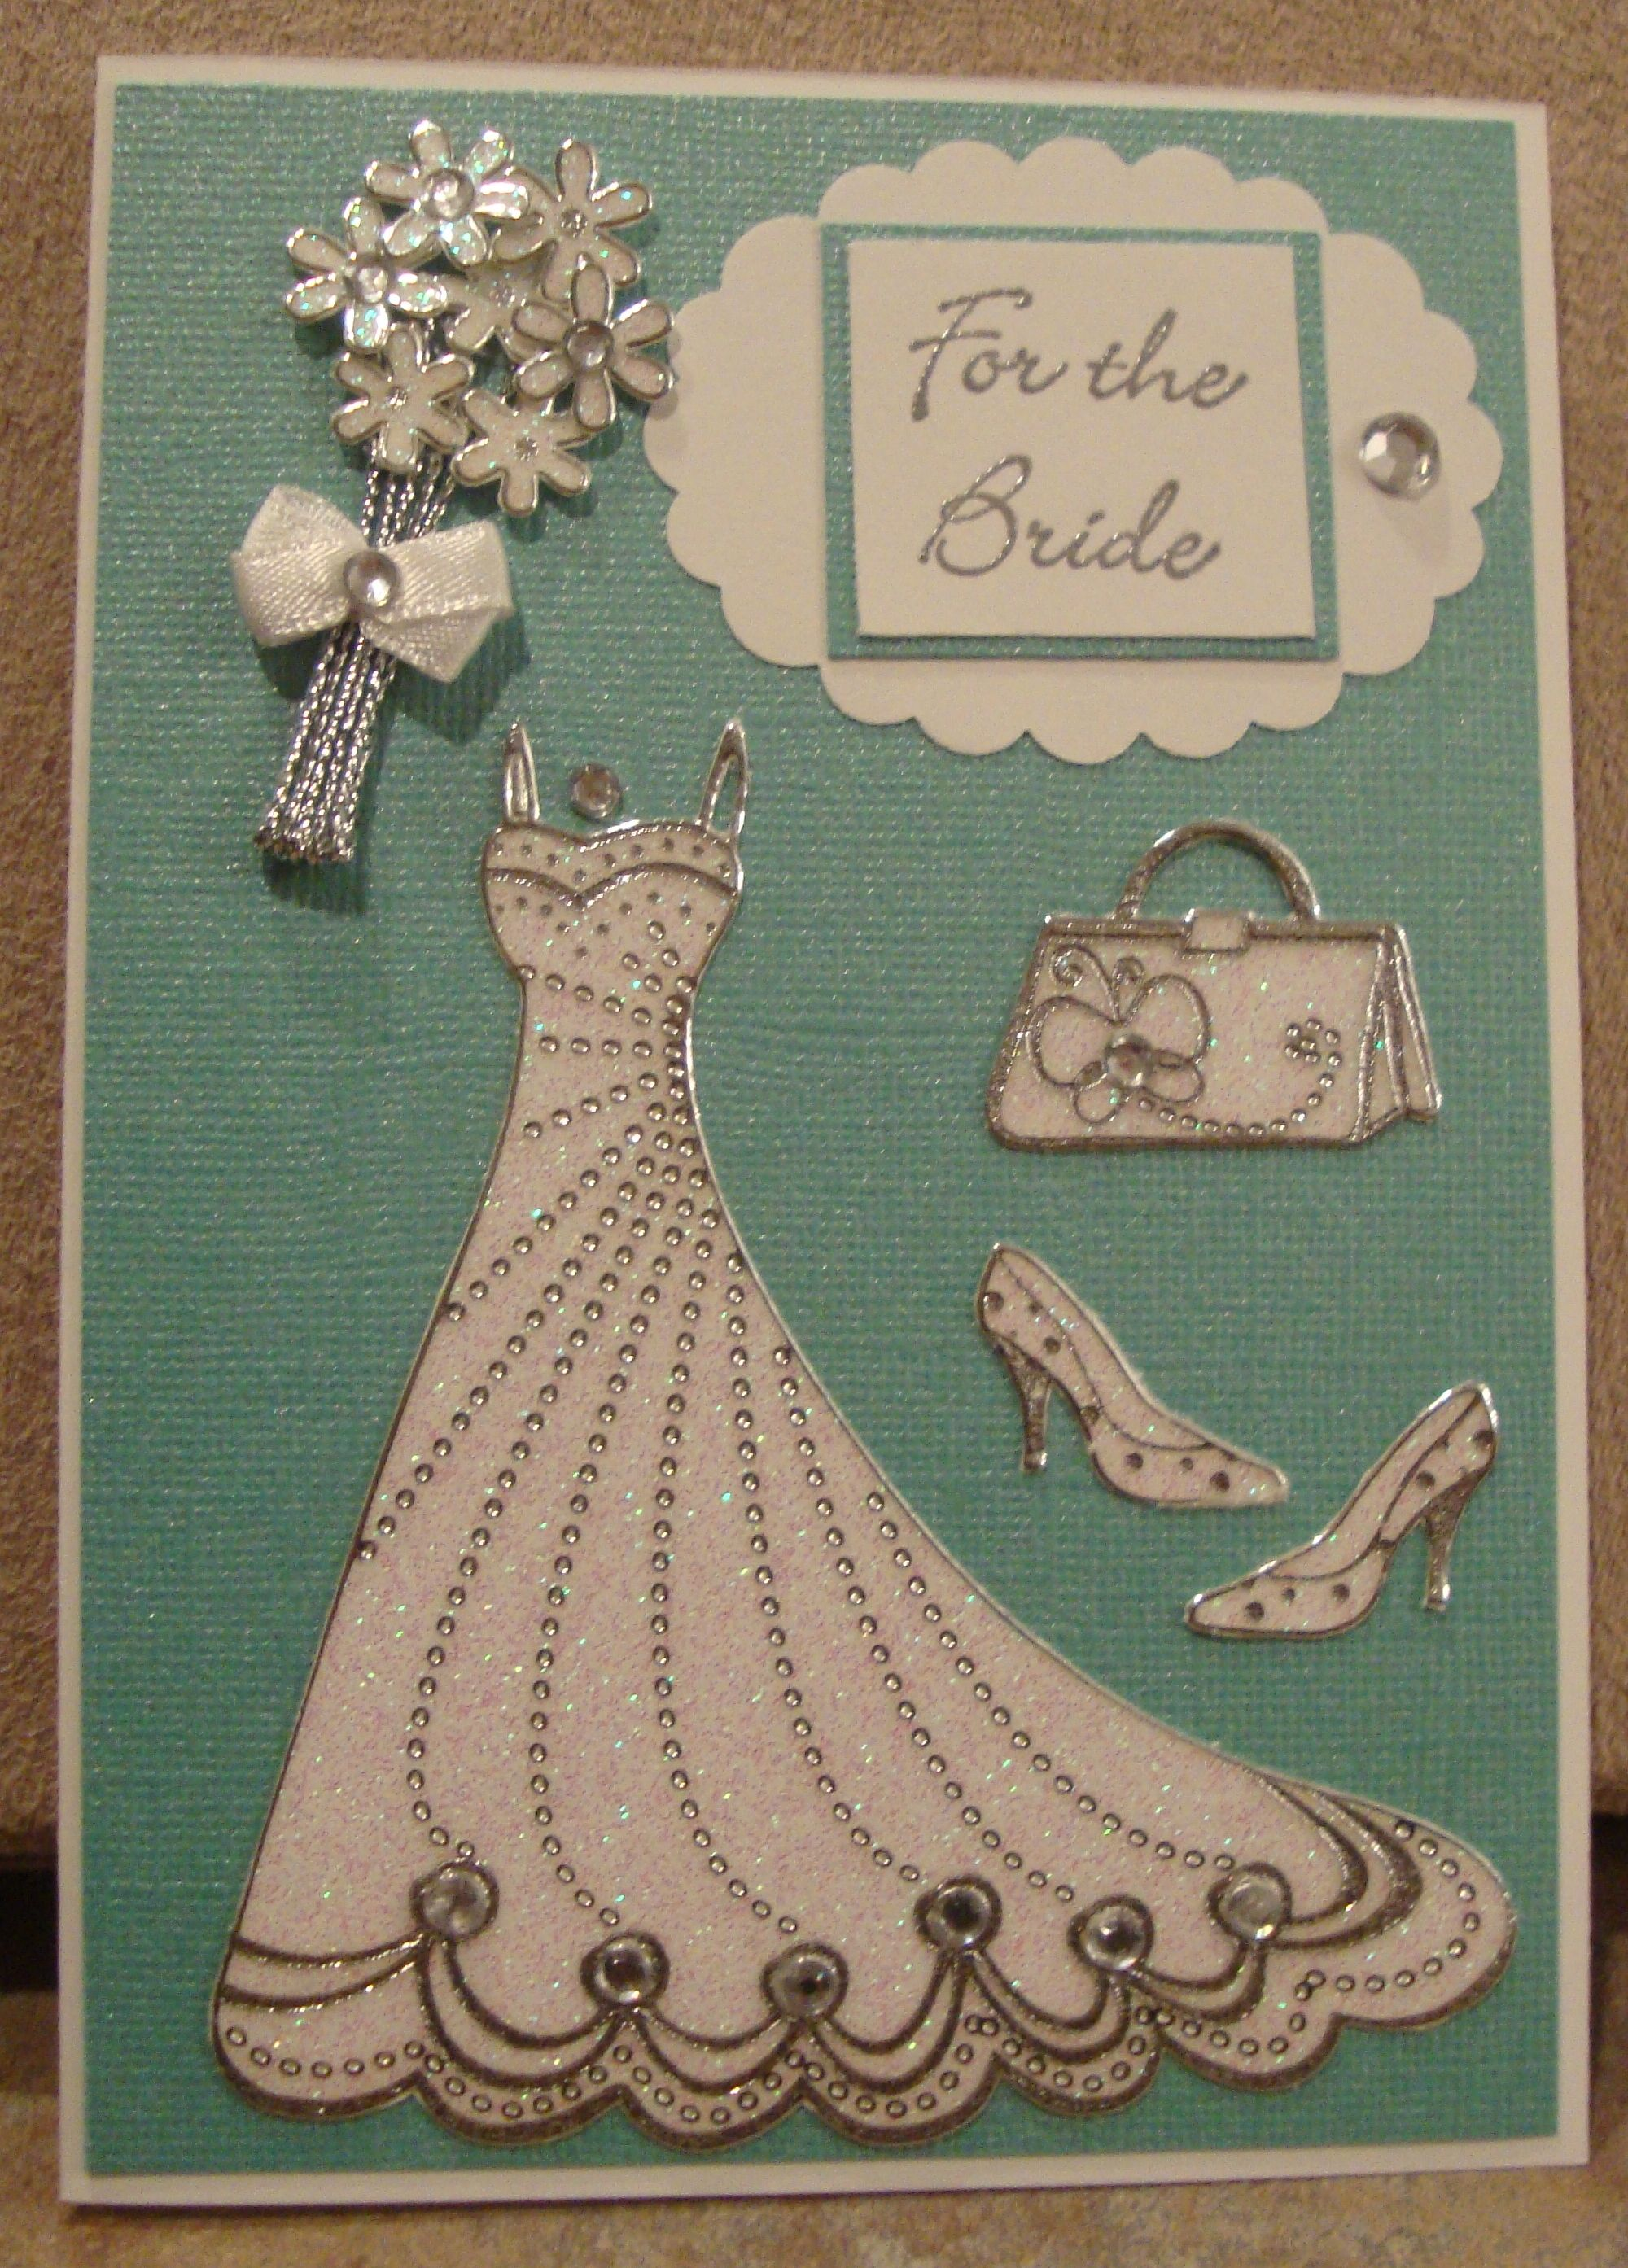 Bridal shower homemade cards by janie cox pinterest more